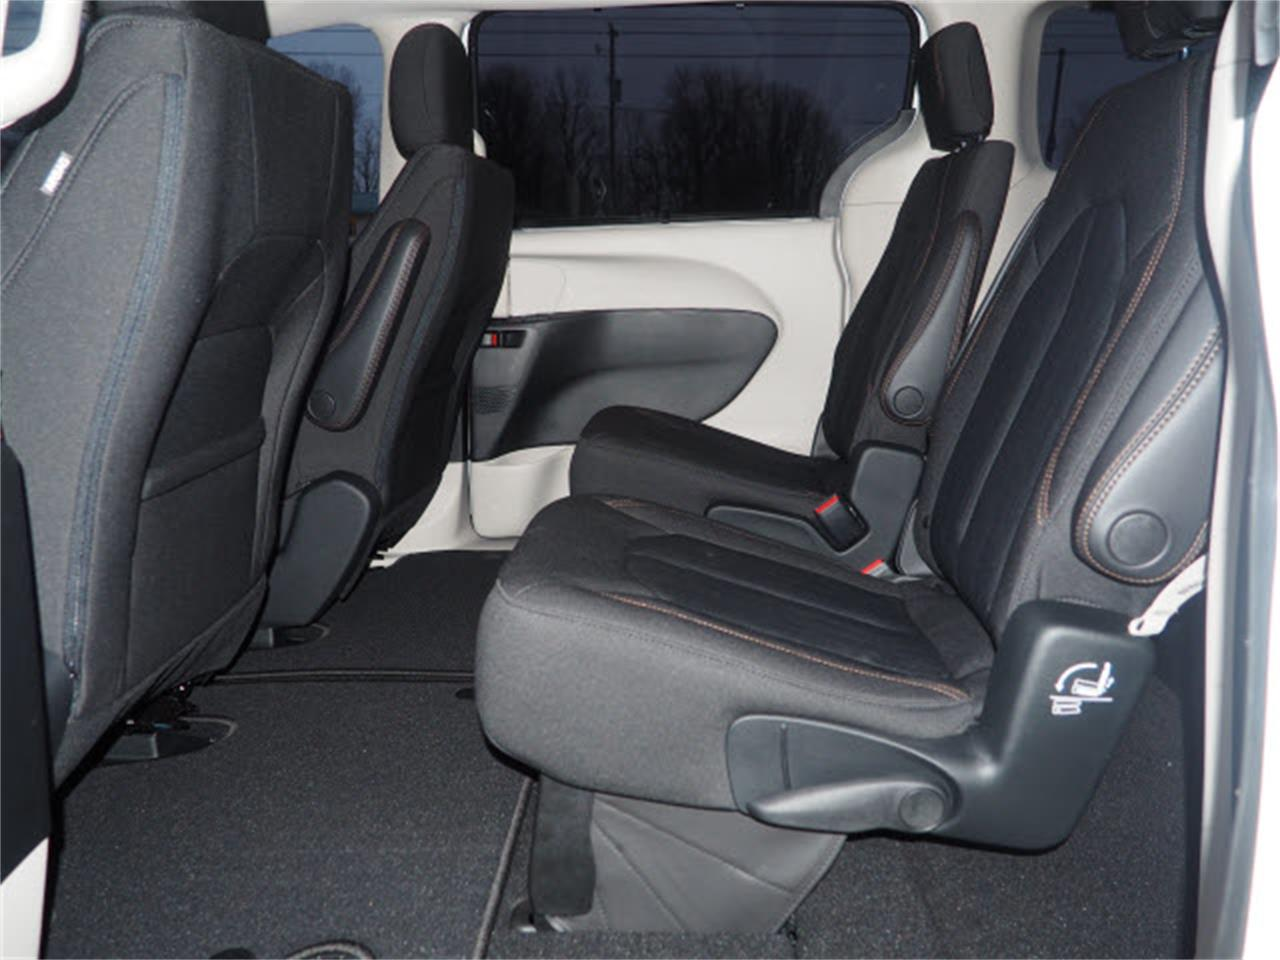 2020 Chrysler Pacifica (CC-1327581) for sale in Marysville, Ohio